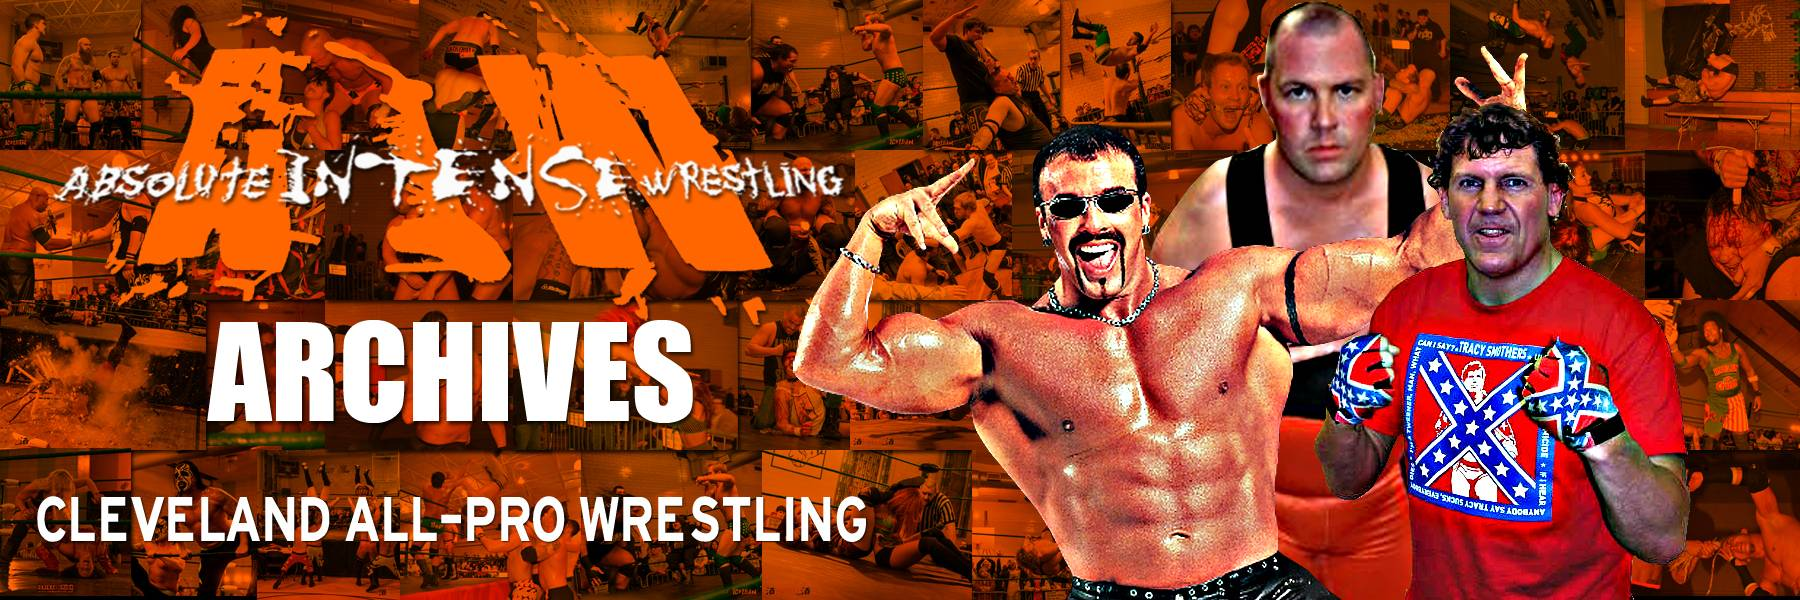 Absolute Intense Wrestling Archives | The Most Intense Wrestling In The United States! | Watch Online Videos Free for 2 weeks